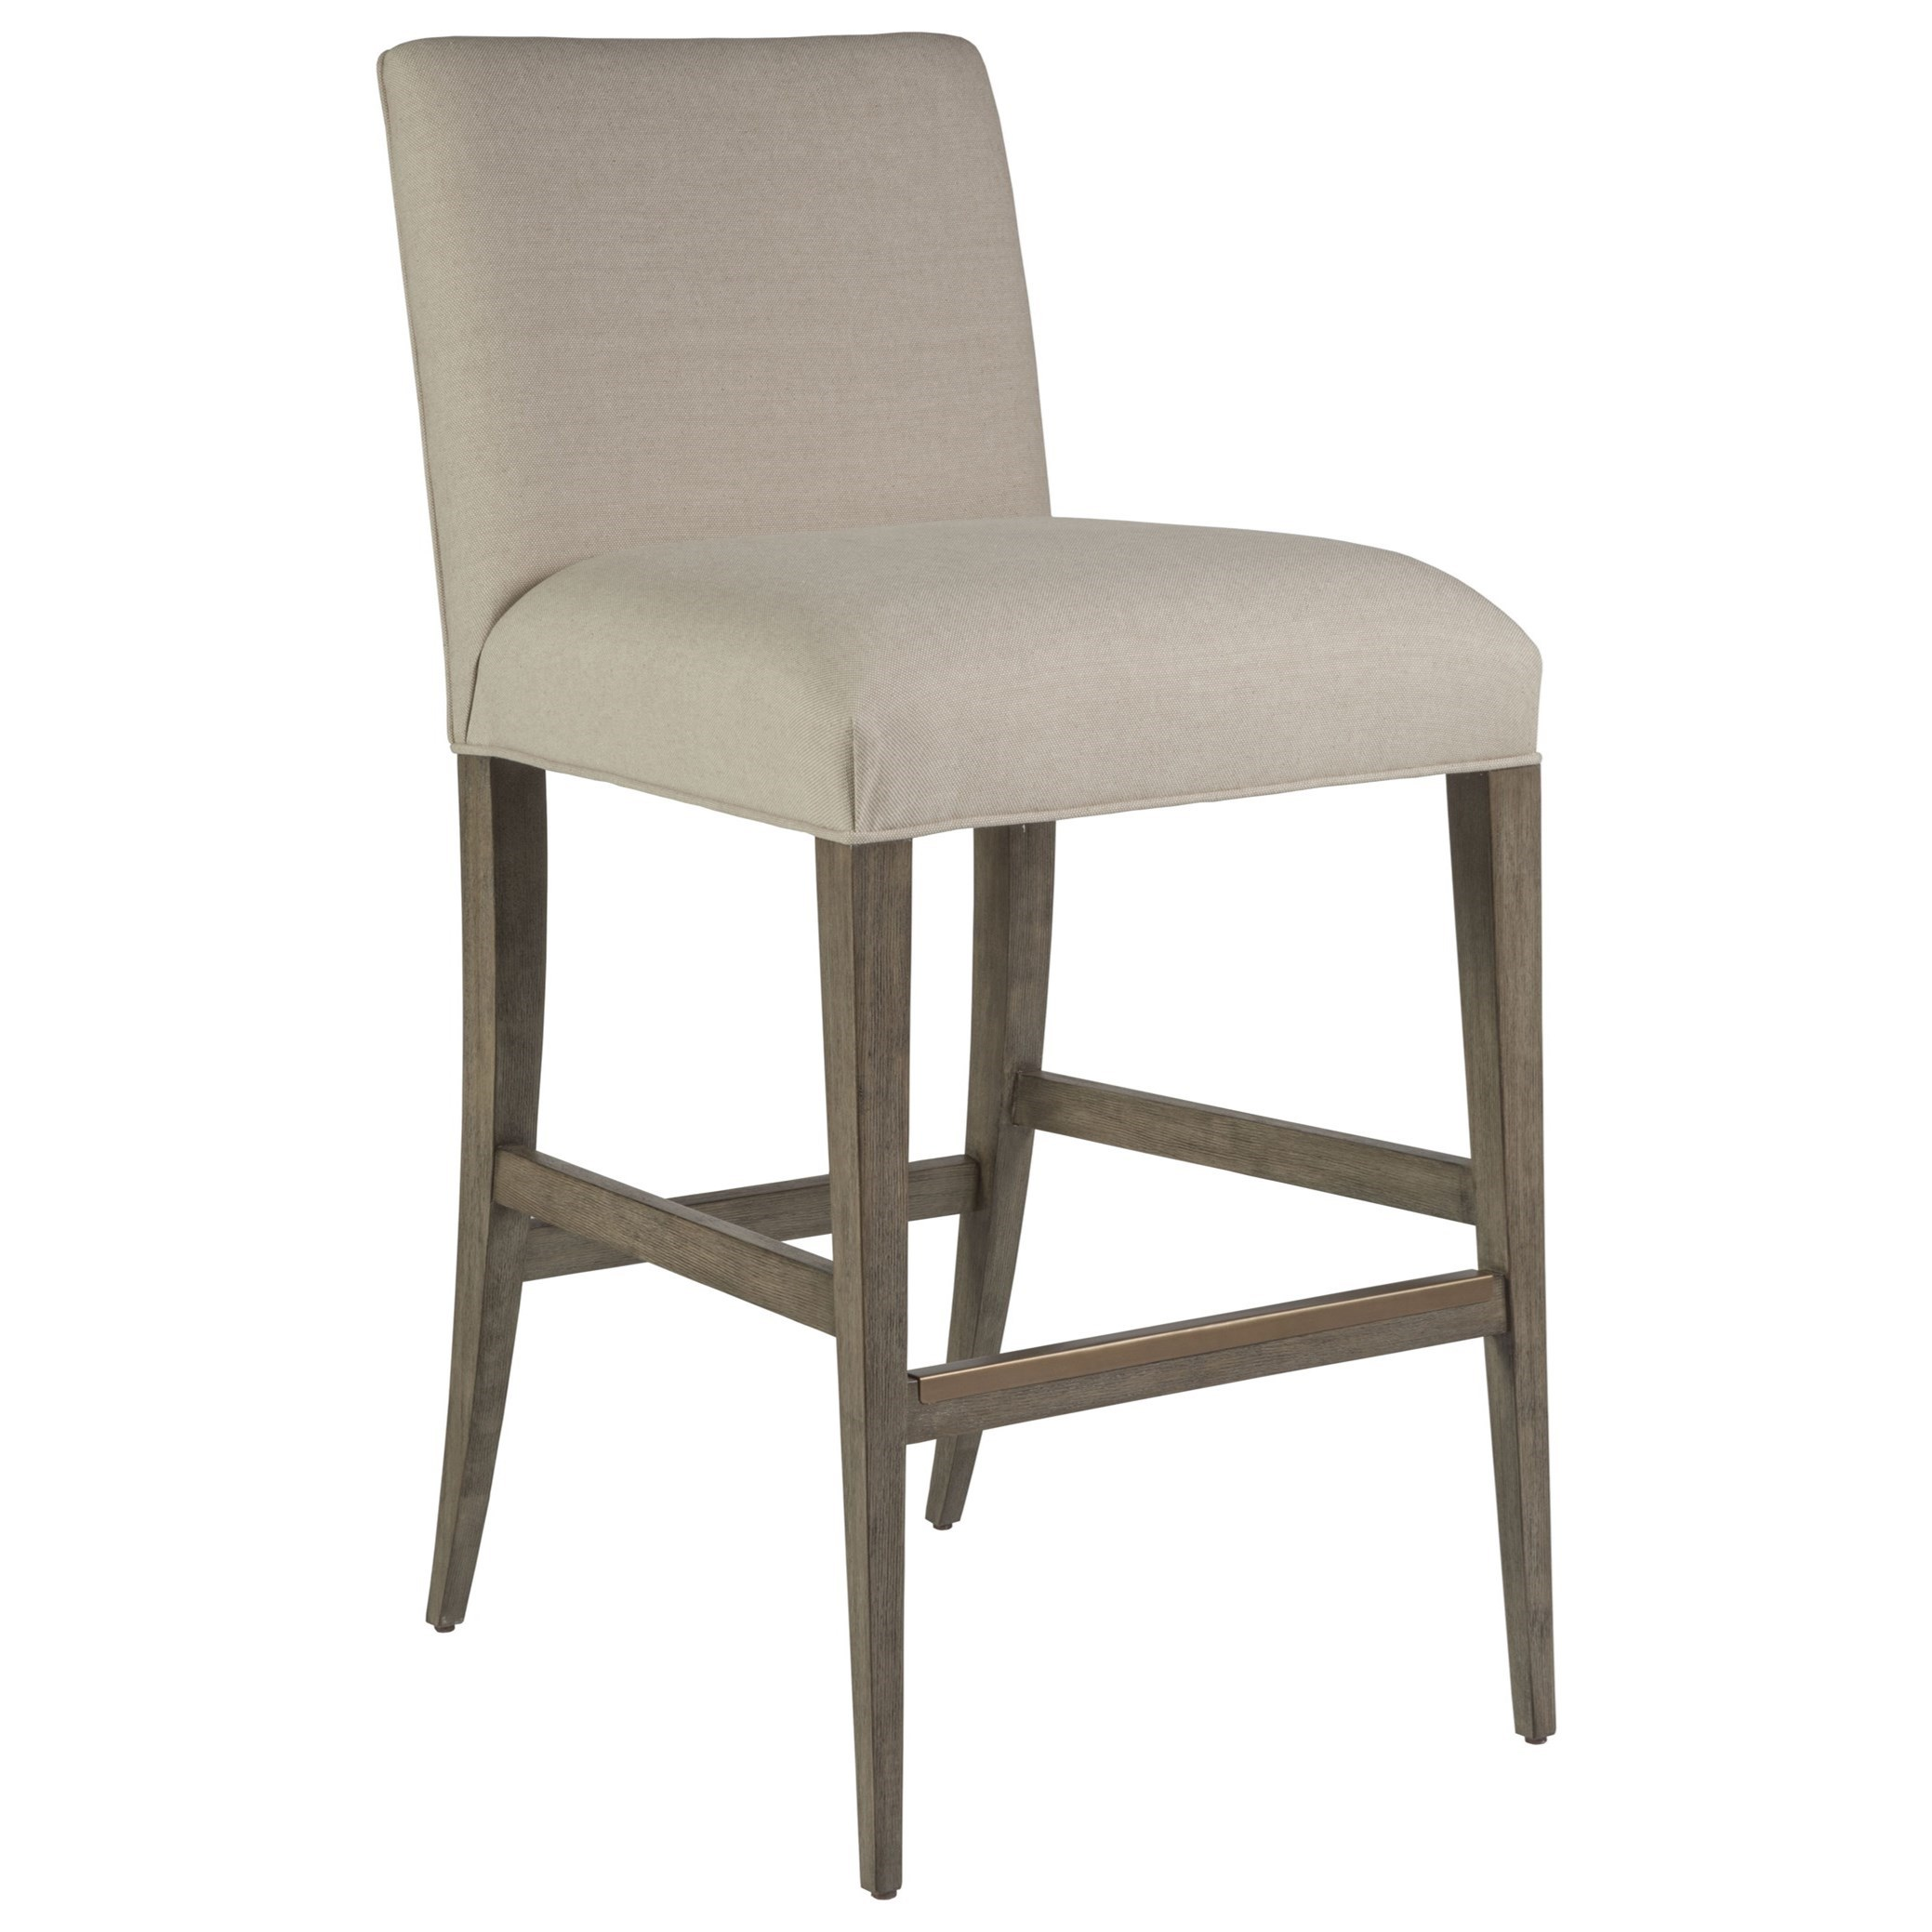 Cohesion Madox Upholstered Low Back Barstool by Artistica at Baer's Furniture